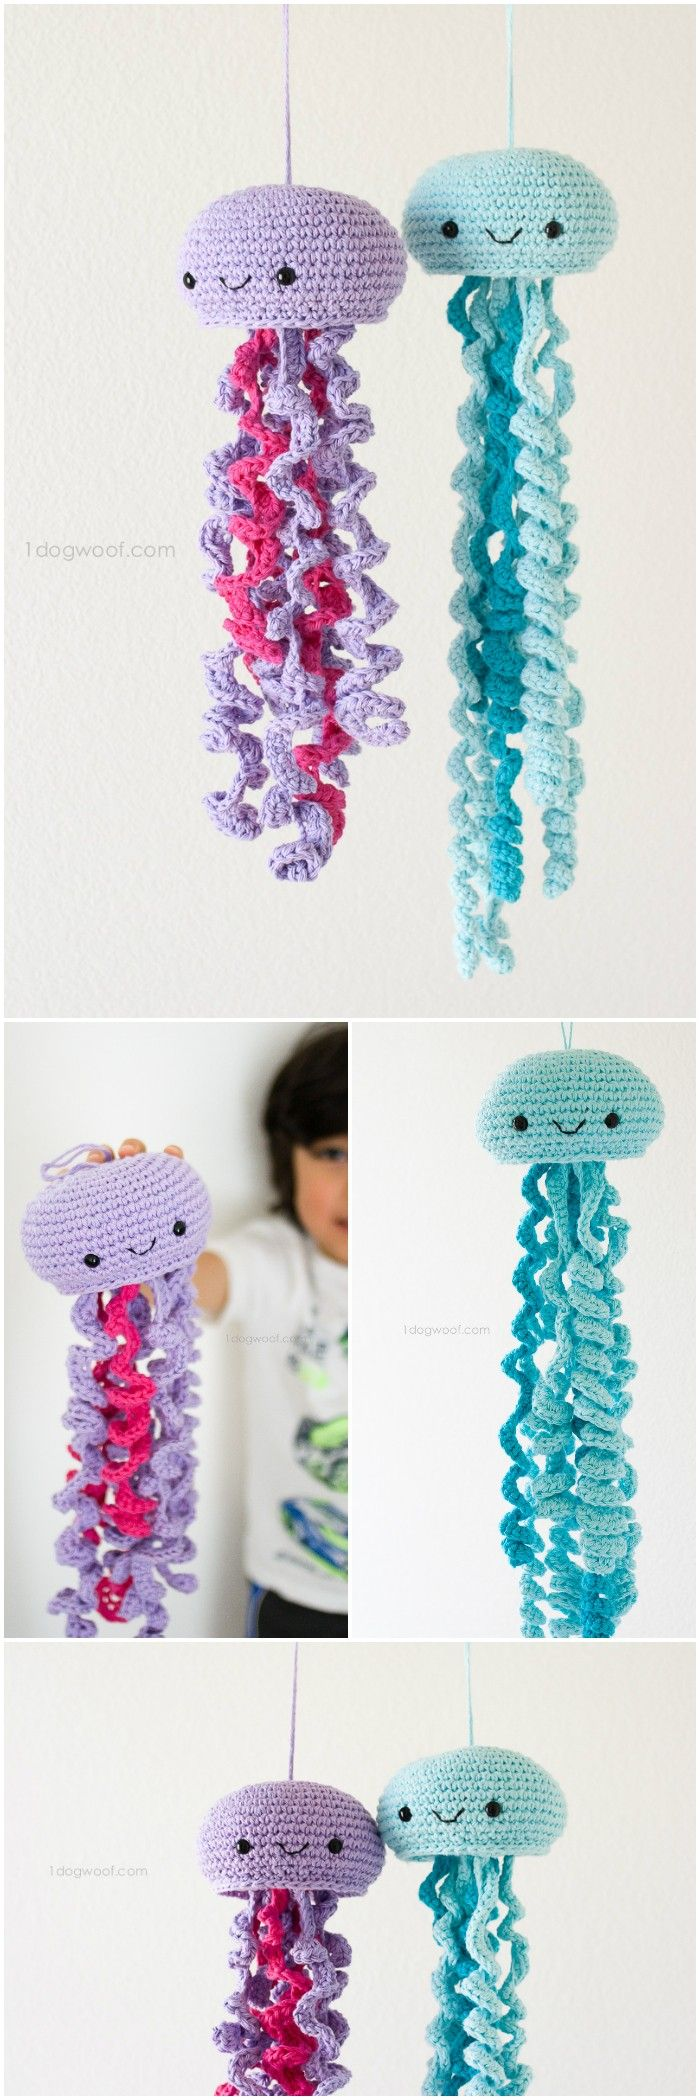 Best 25 crocheted jellyfish ideas on pinterest octopus crochet here we have shared a grand list of free crochet amigurumi patterns that all makes perfect bankloansurffo Images